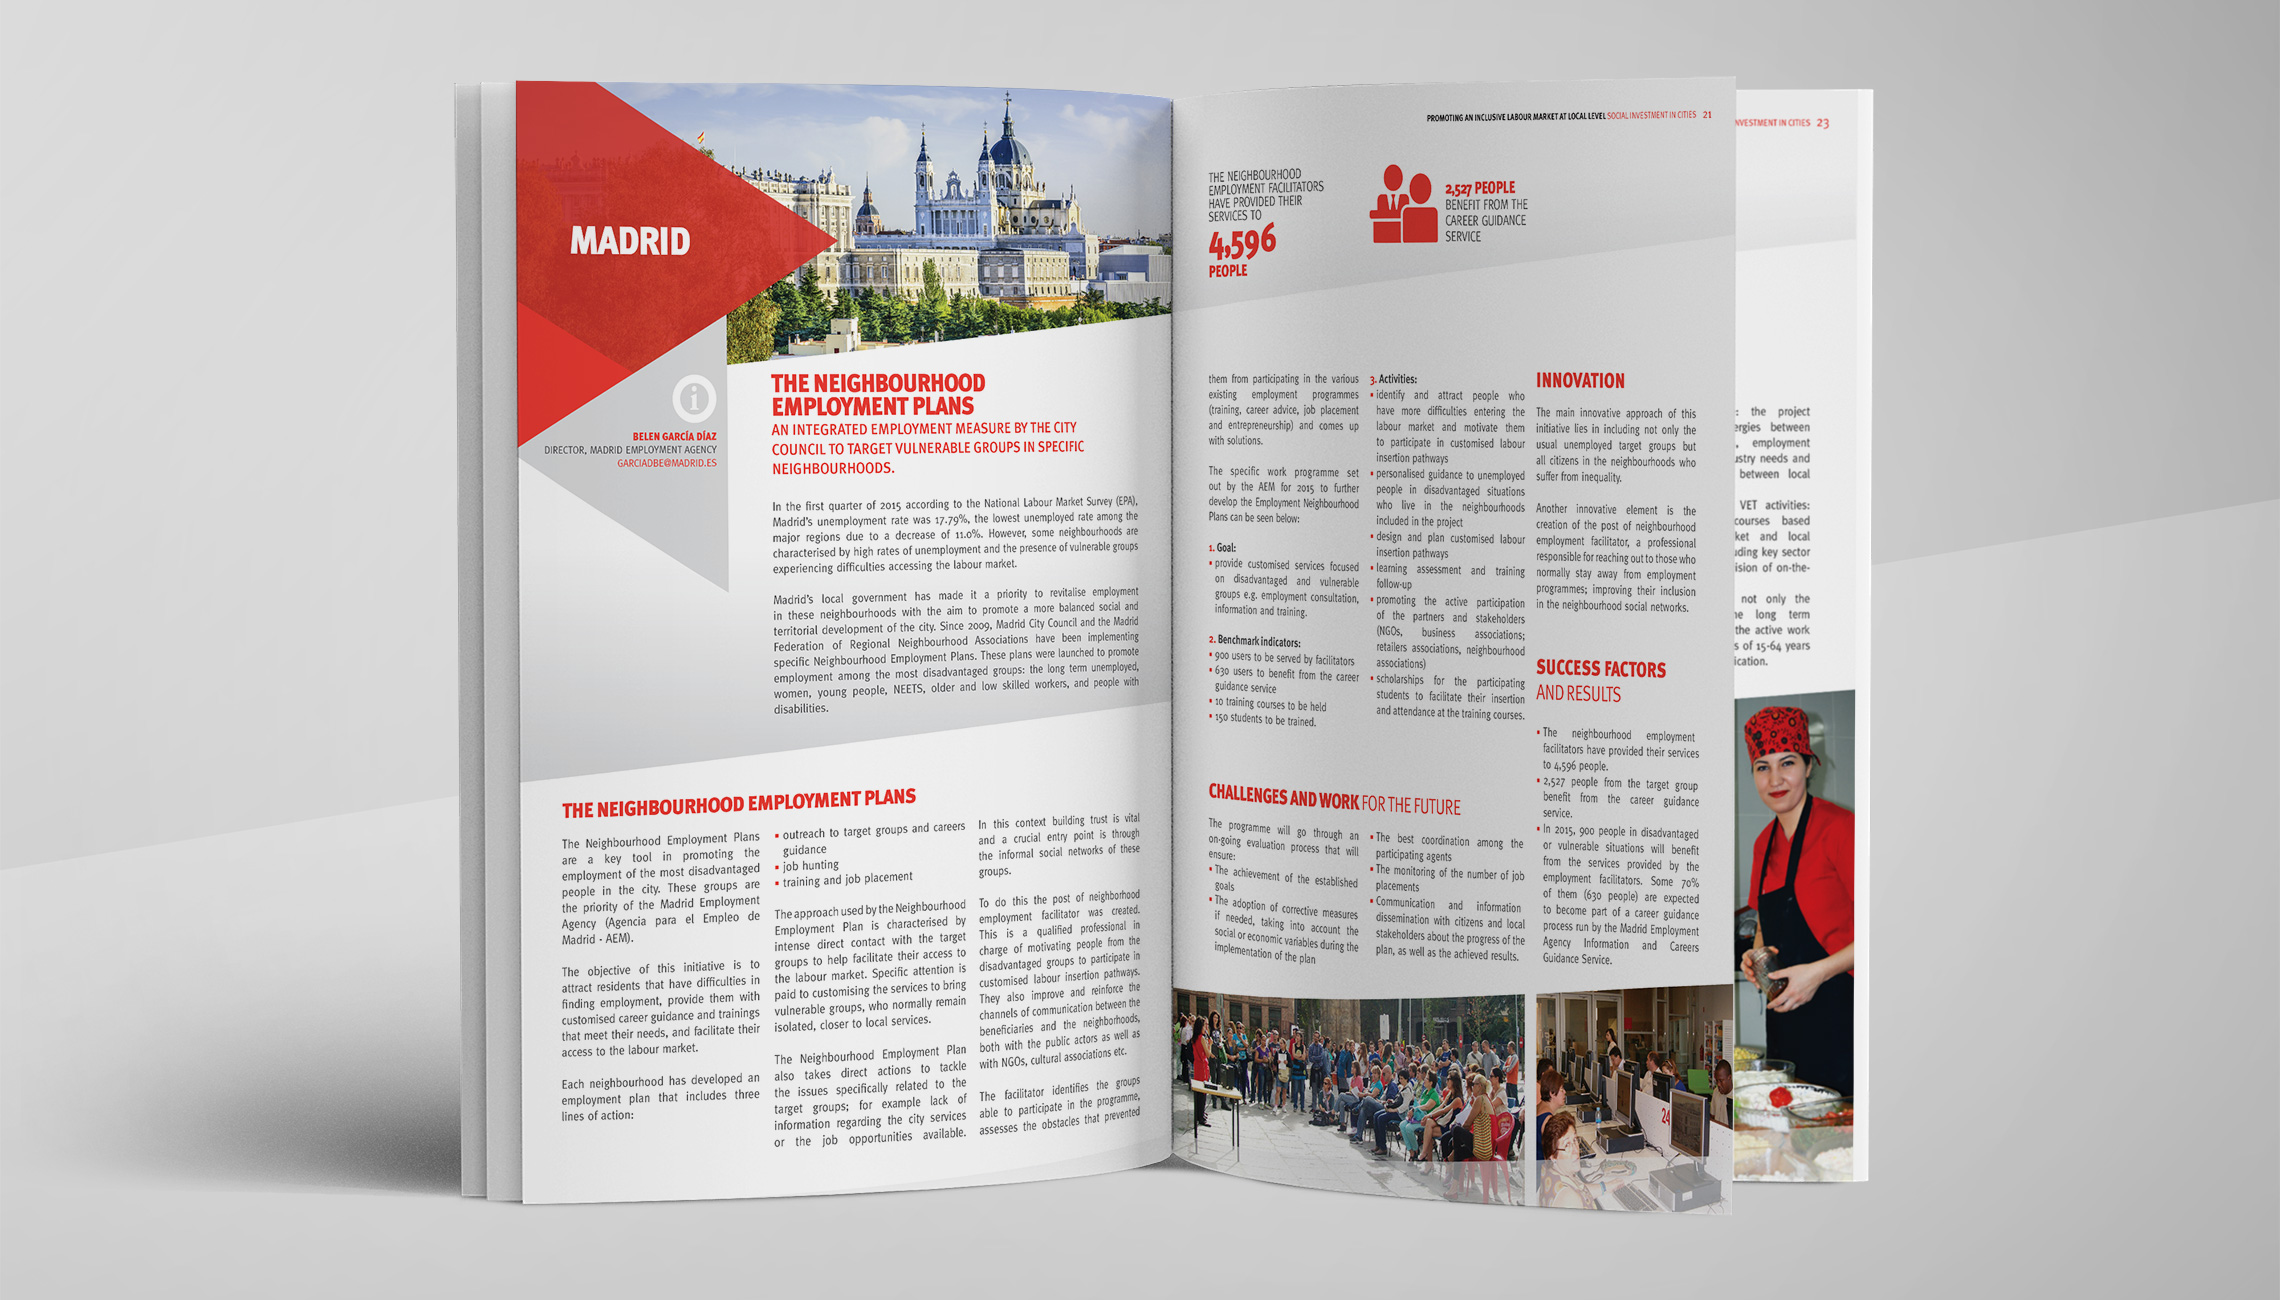 publication: Social investment in cities brochure - image 2